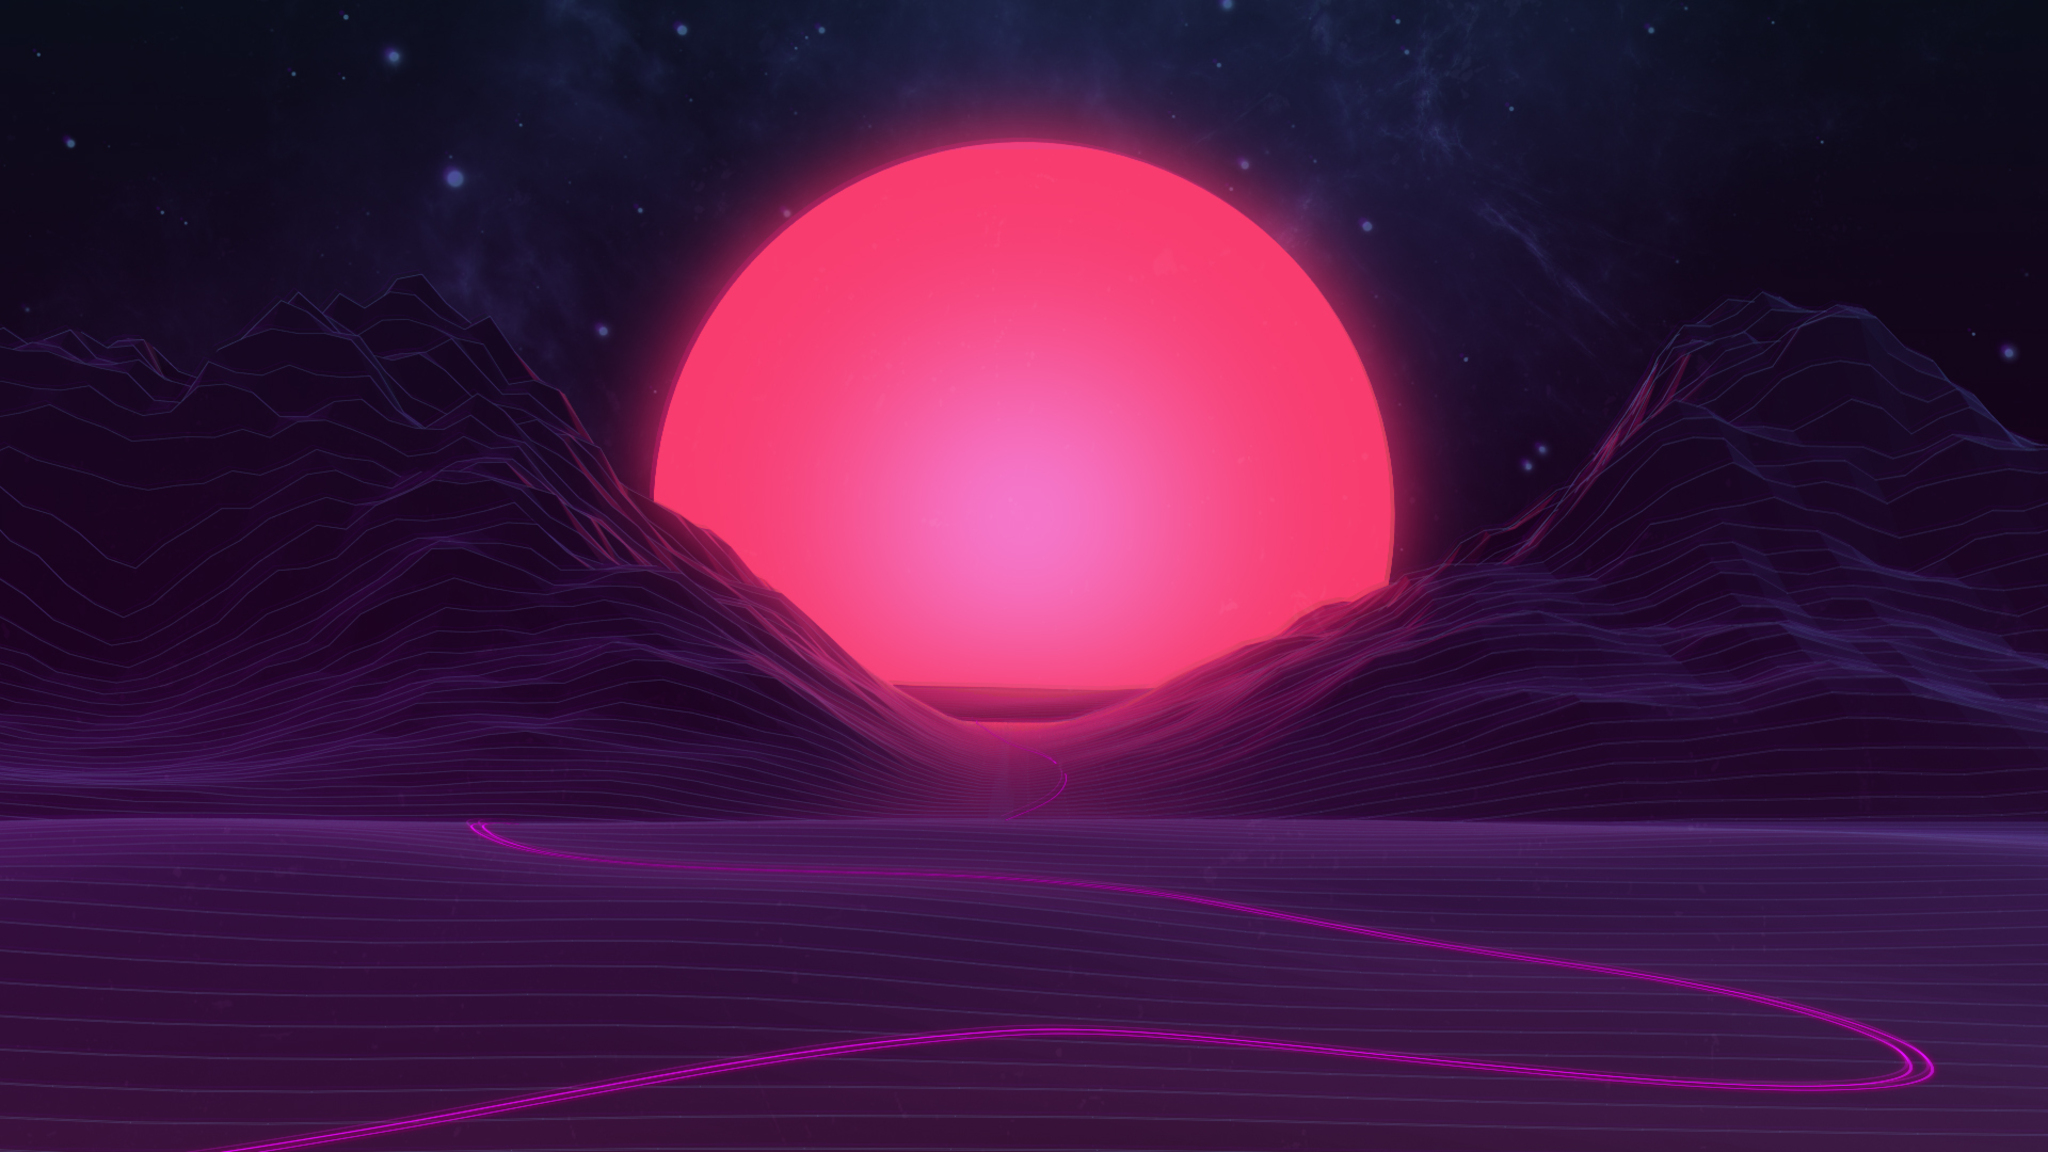 2048x1152 Neon Sunset 2048x1152 Resolution Hd 4k Wallpapers Images Backgrounds Photos And Pictures